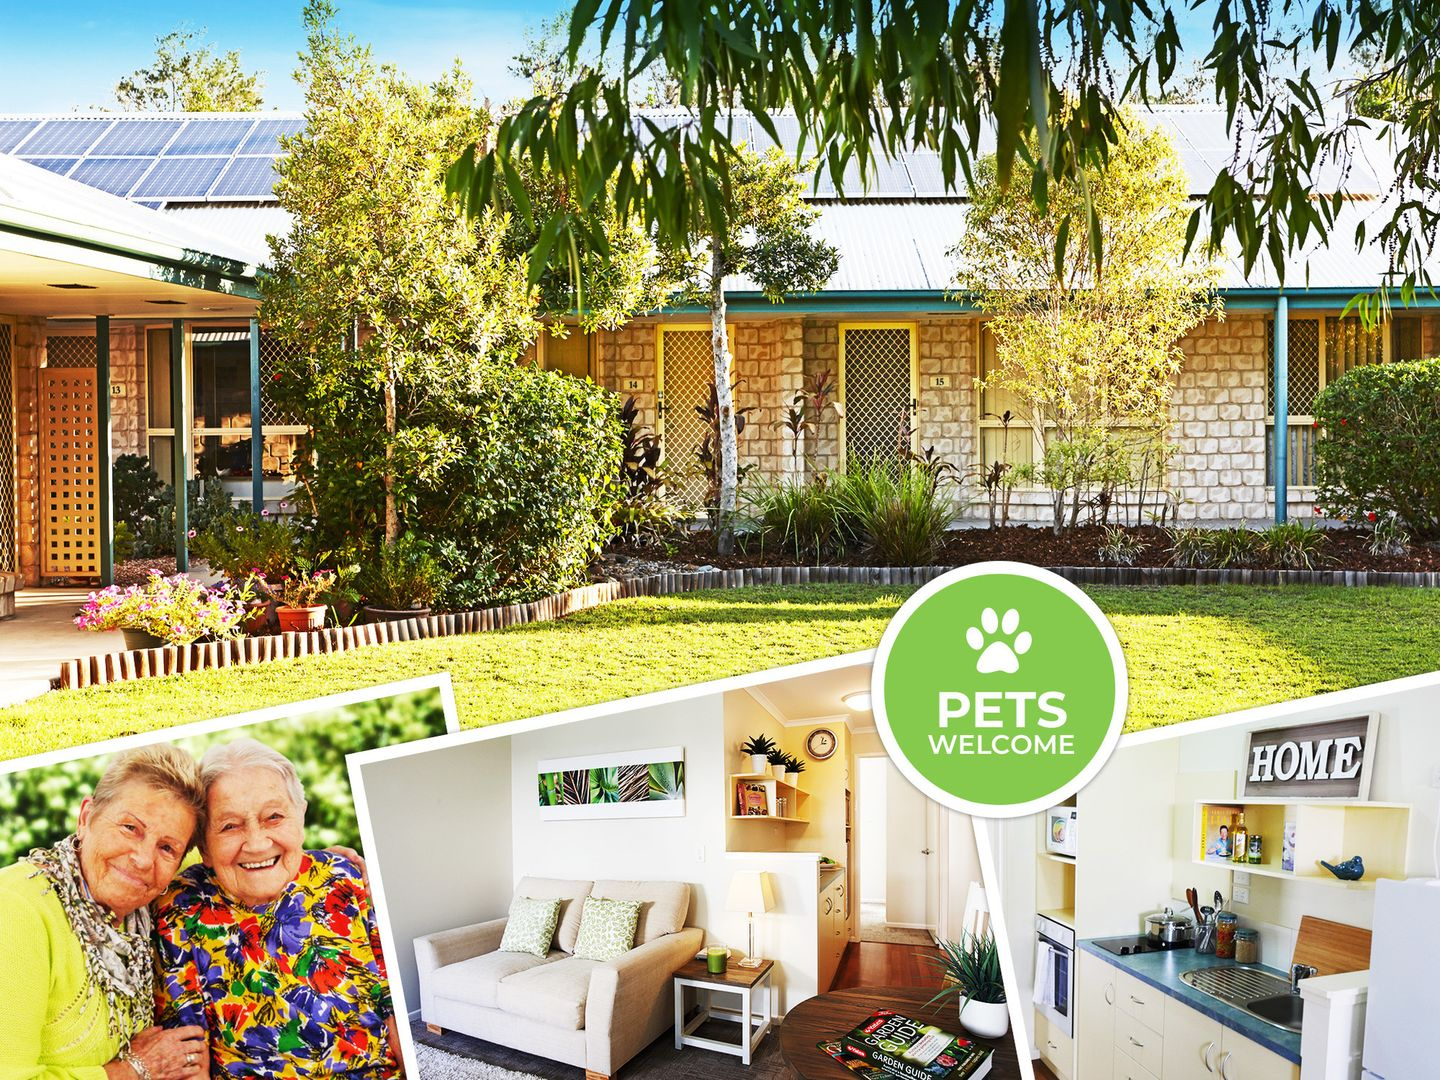 60045FR/586 Browns Plains Road QLD 4132, Marsden QLD 4132, Image 0